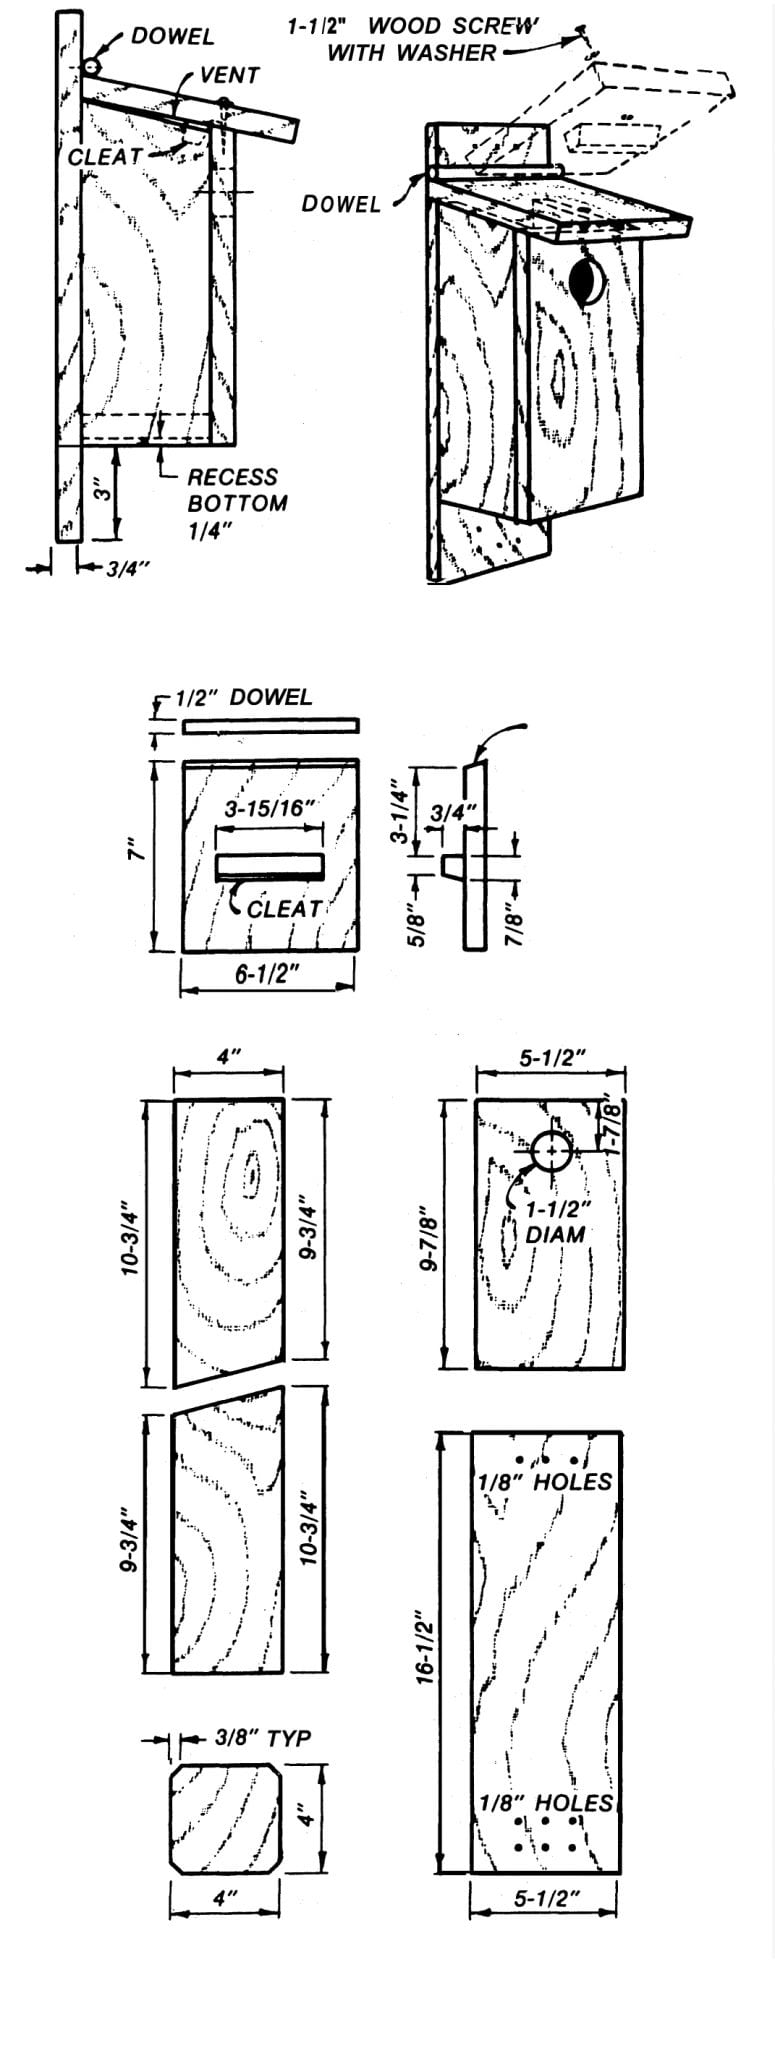 Figure 1. Construction details for a top-opening songbird nest box